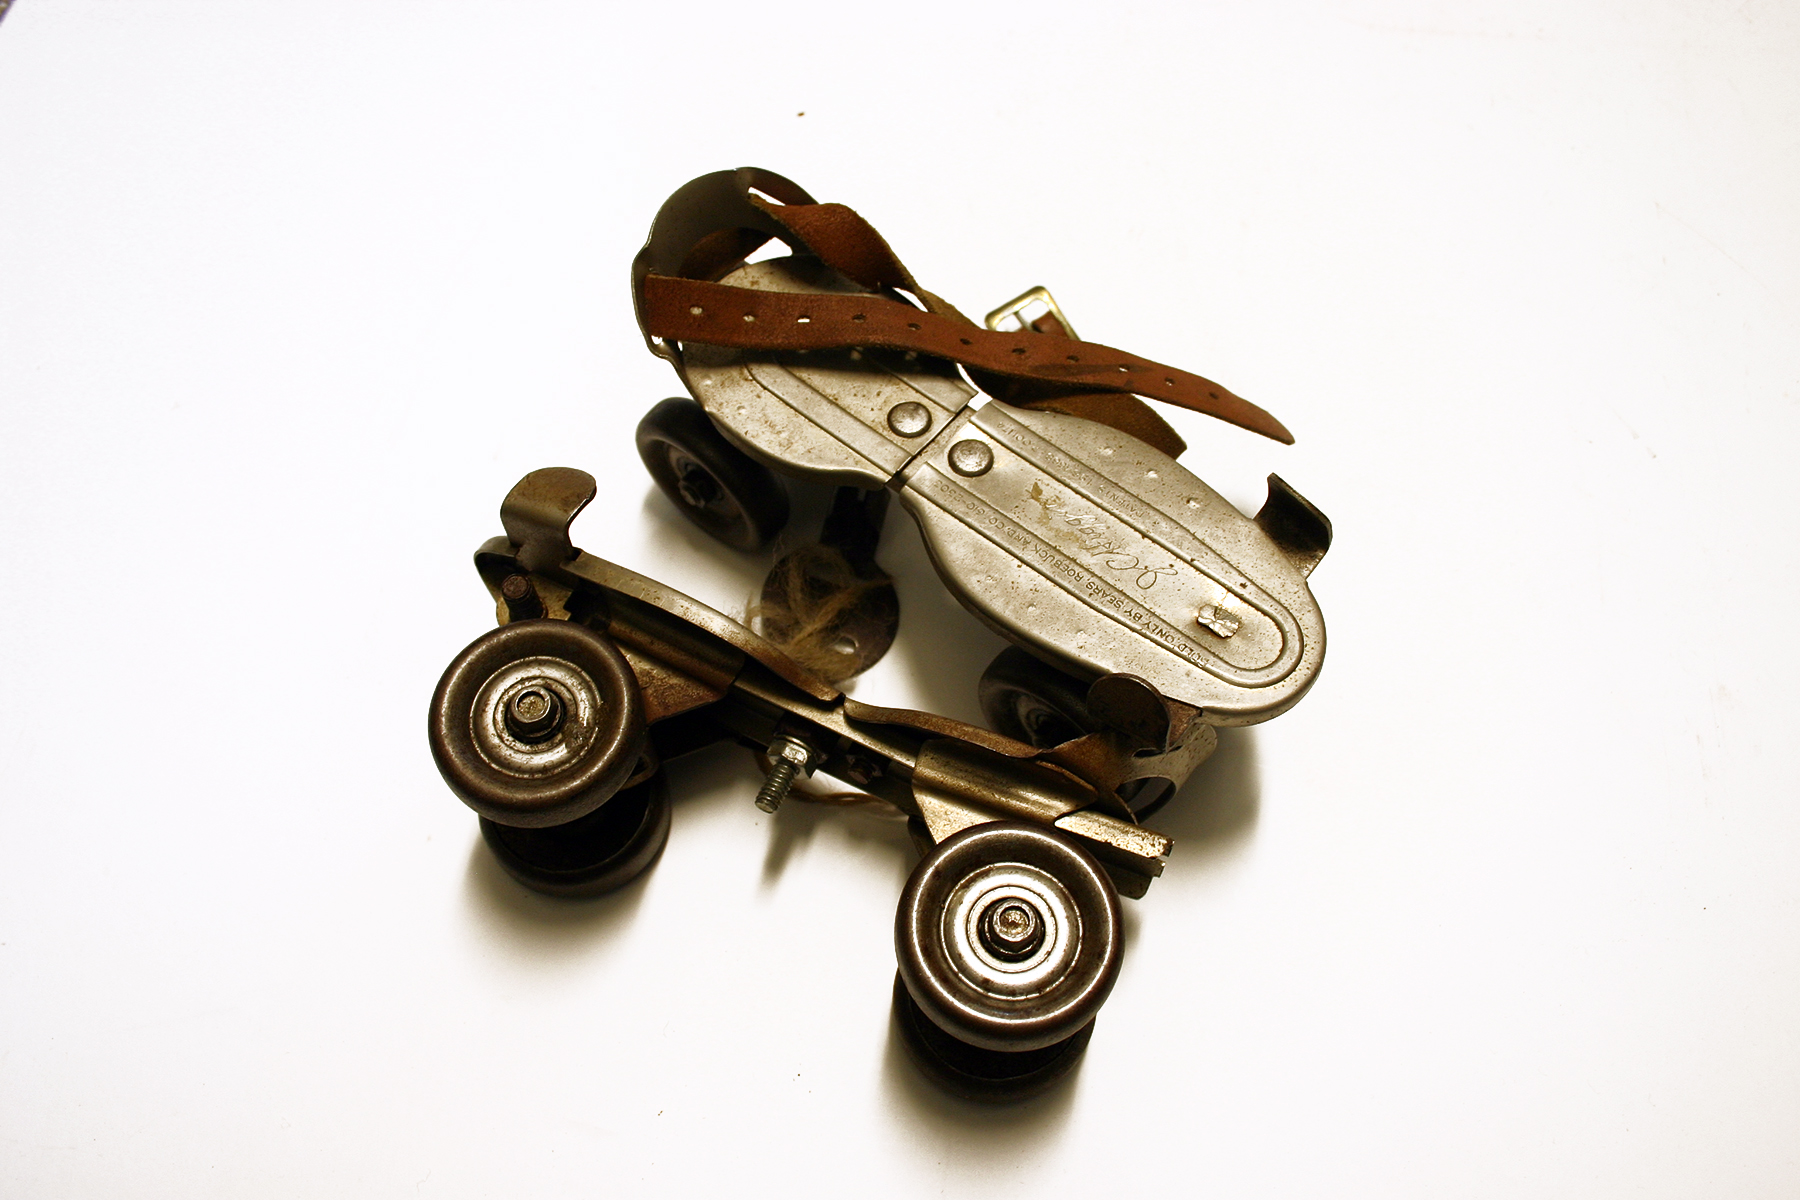 An old pair of leather-strapped roller skates, photographed on a white background.